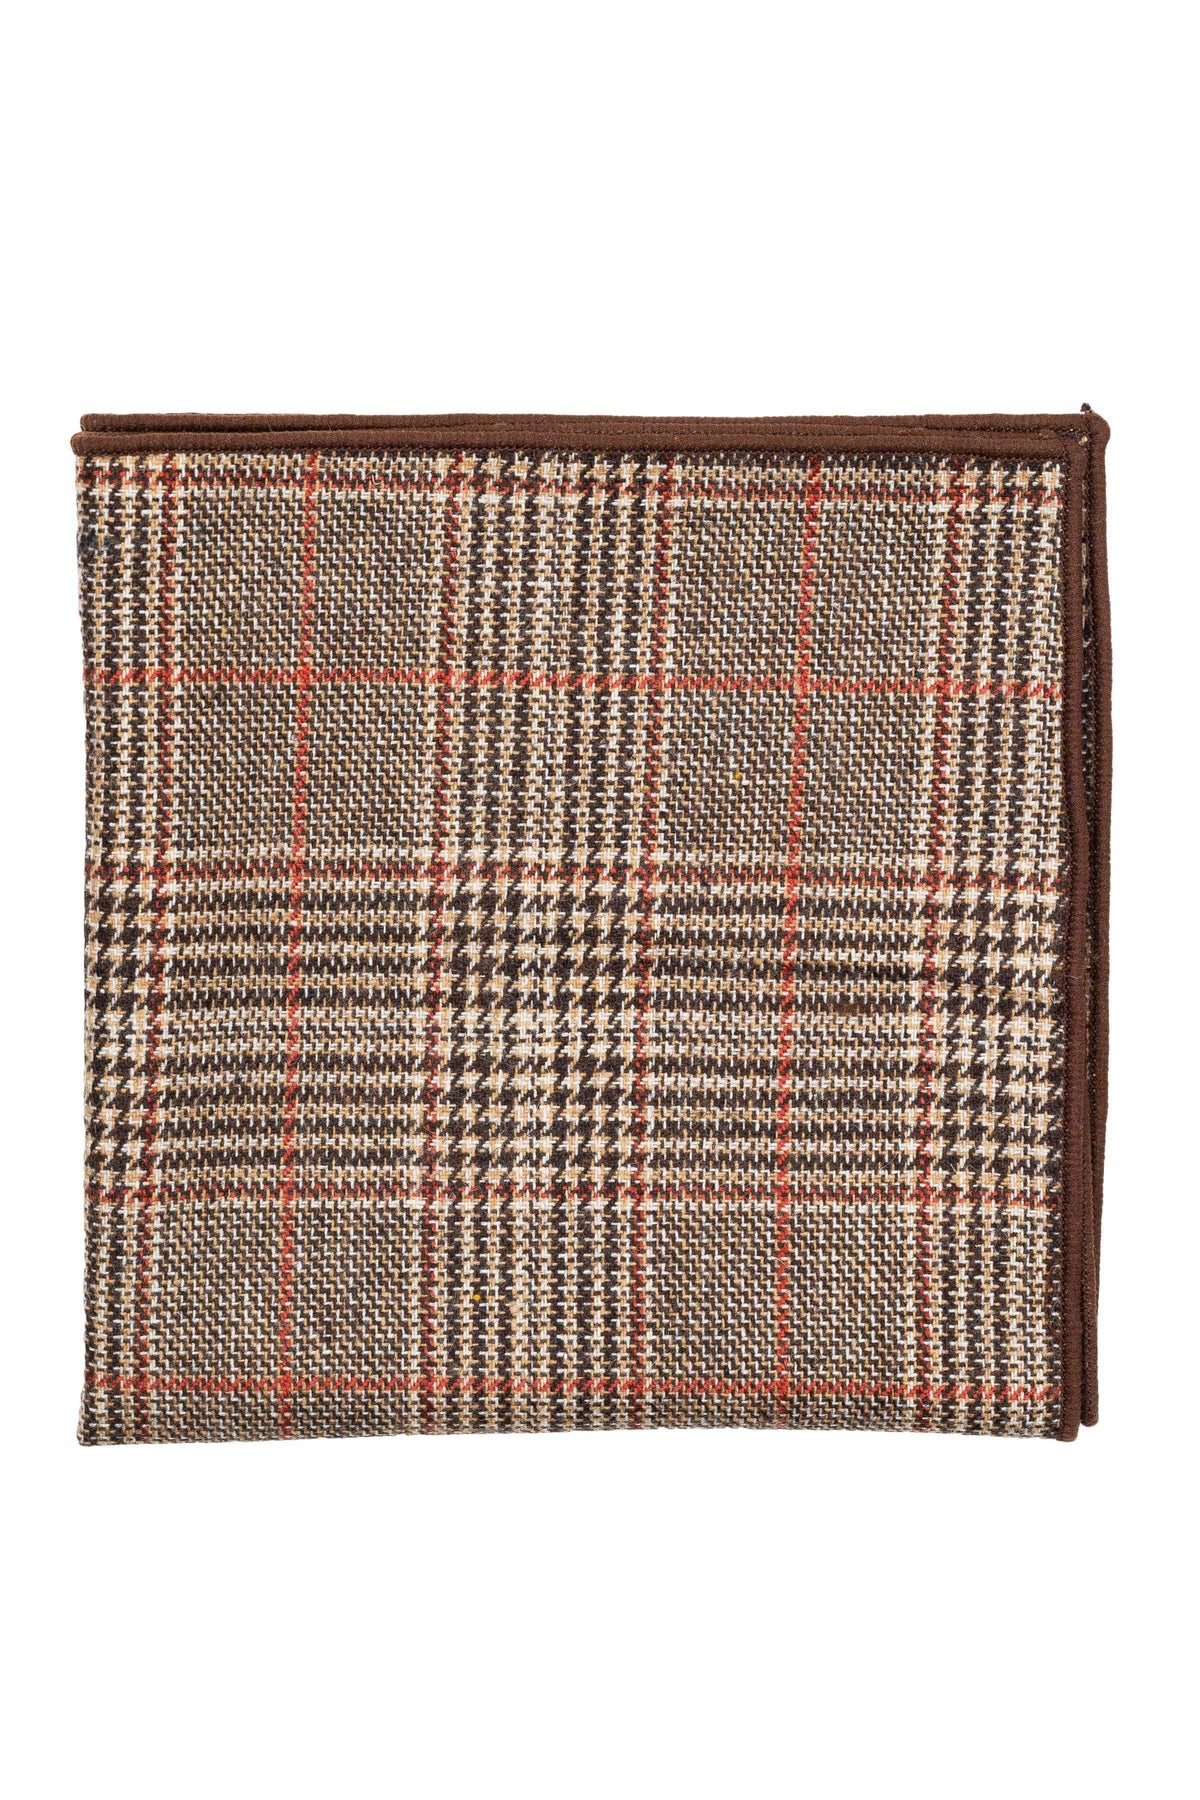 An ivy Pocket square Brown Prince Wool Pocket